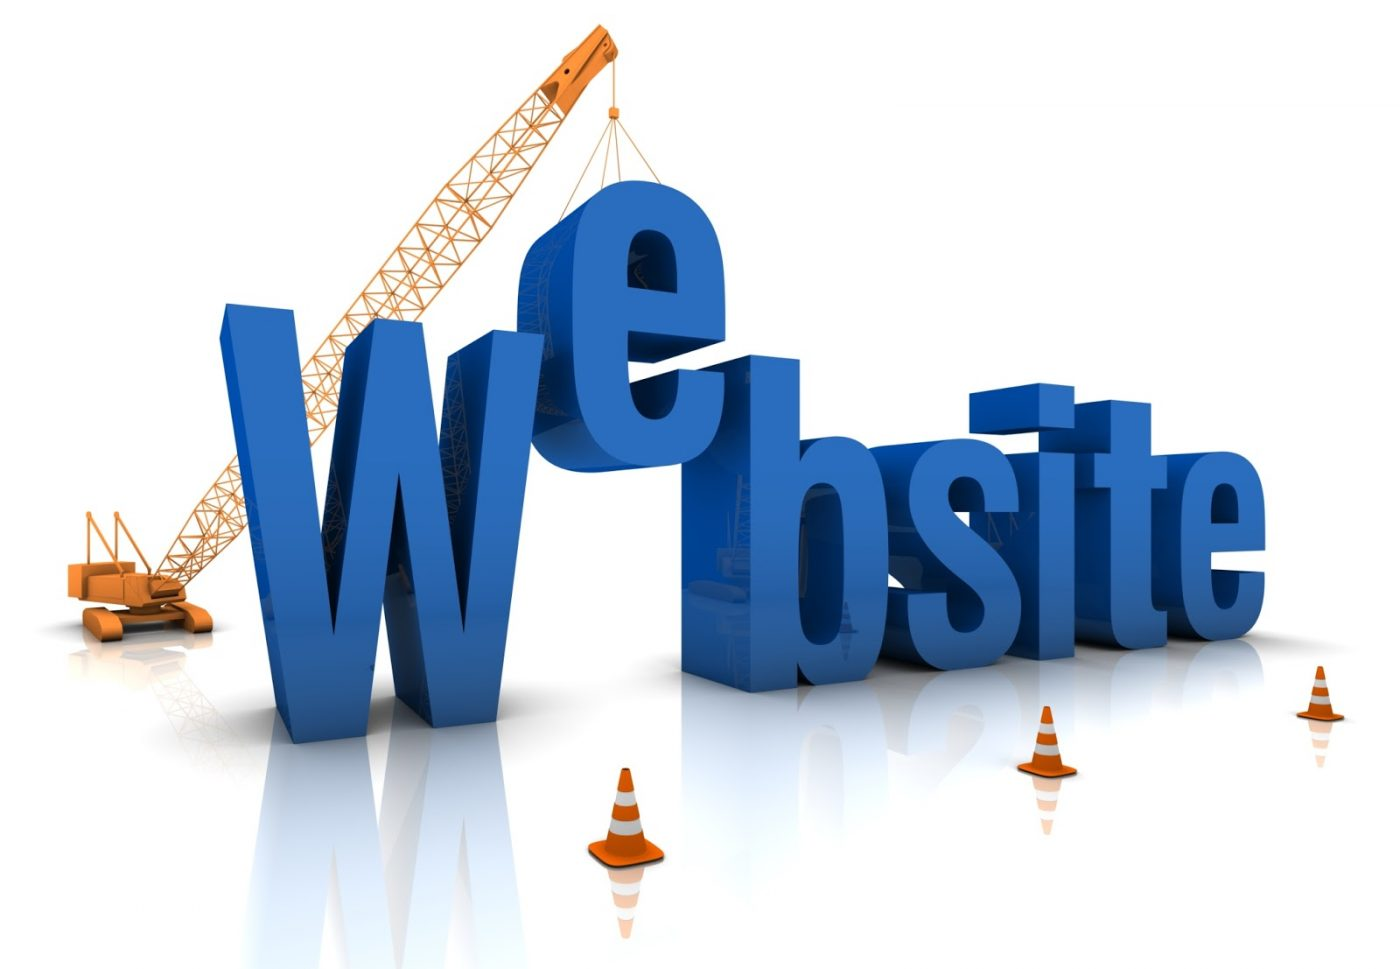 website-construction-e1496230585651.jpg